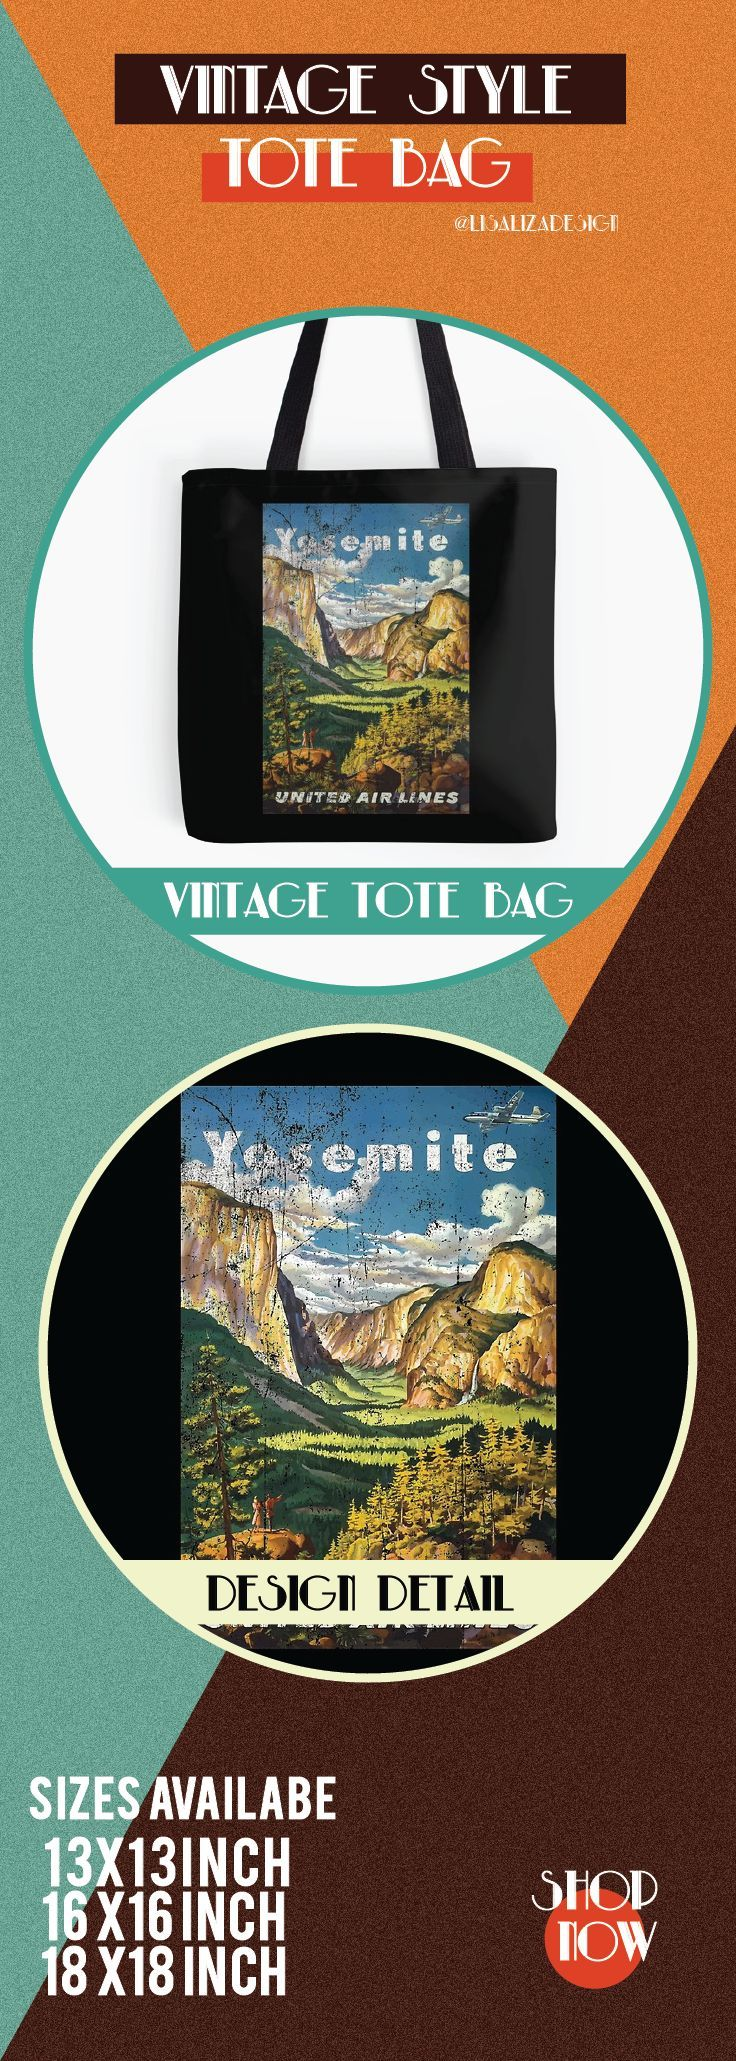 Vintage Travel Poster, Aged and Weathered - Yosemite National Park.  ToteBags  A collection design inspired by vintage travel and advertisements posters  from the late 19th century printed on durable tote bags. 3 Sizes available .  Excellent gift ideas for vintage lovers and everyone. #vintage #hugs #holidaygift #oldies #homedecor #retro #travelposter #totebag #redbubble #teepublic #lisalizadesign #vintageposter #oldies